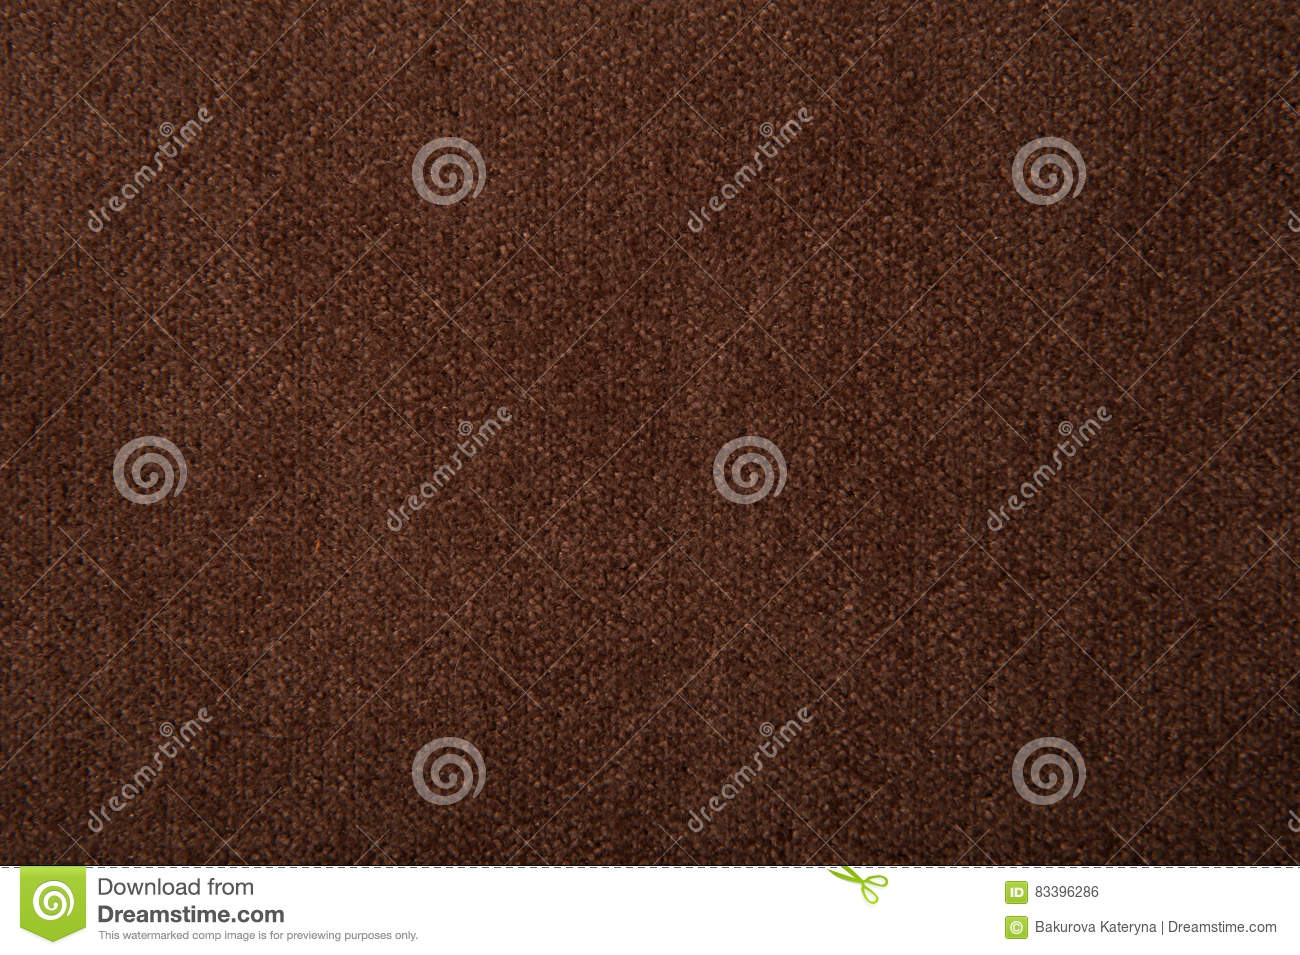 Fabric texture brown carpeting